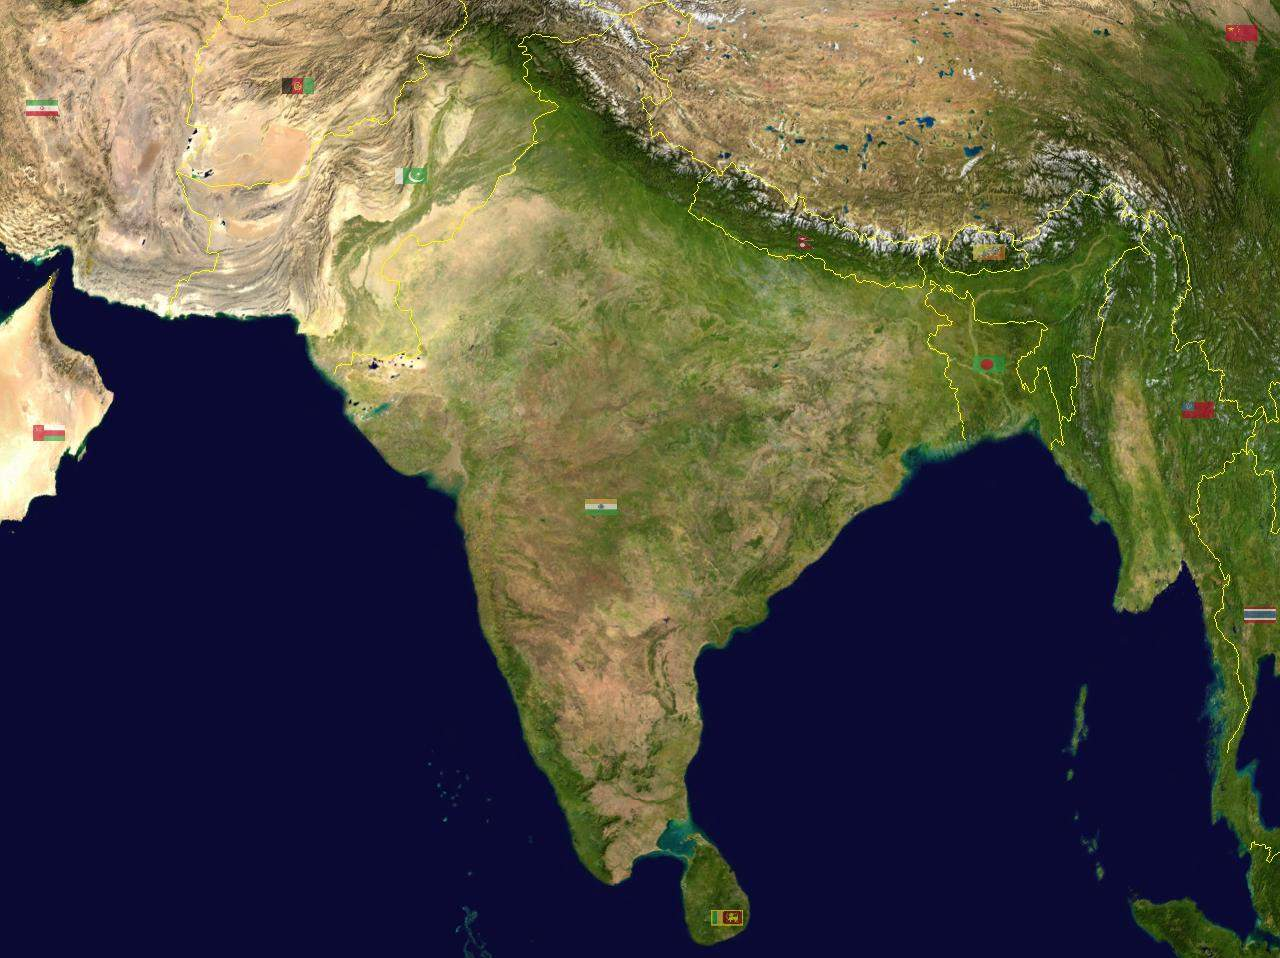 map of india satellite view South Asia Satellite Mapsof Net map of india satellite view